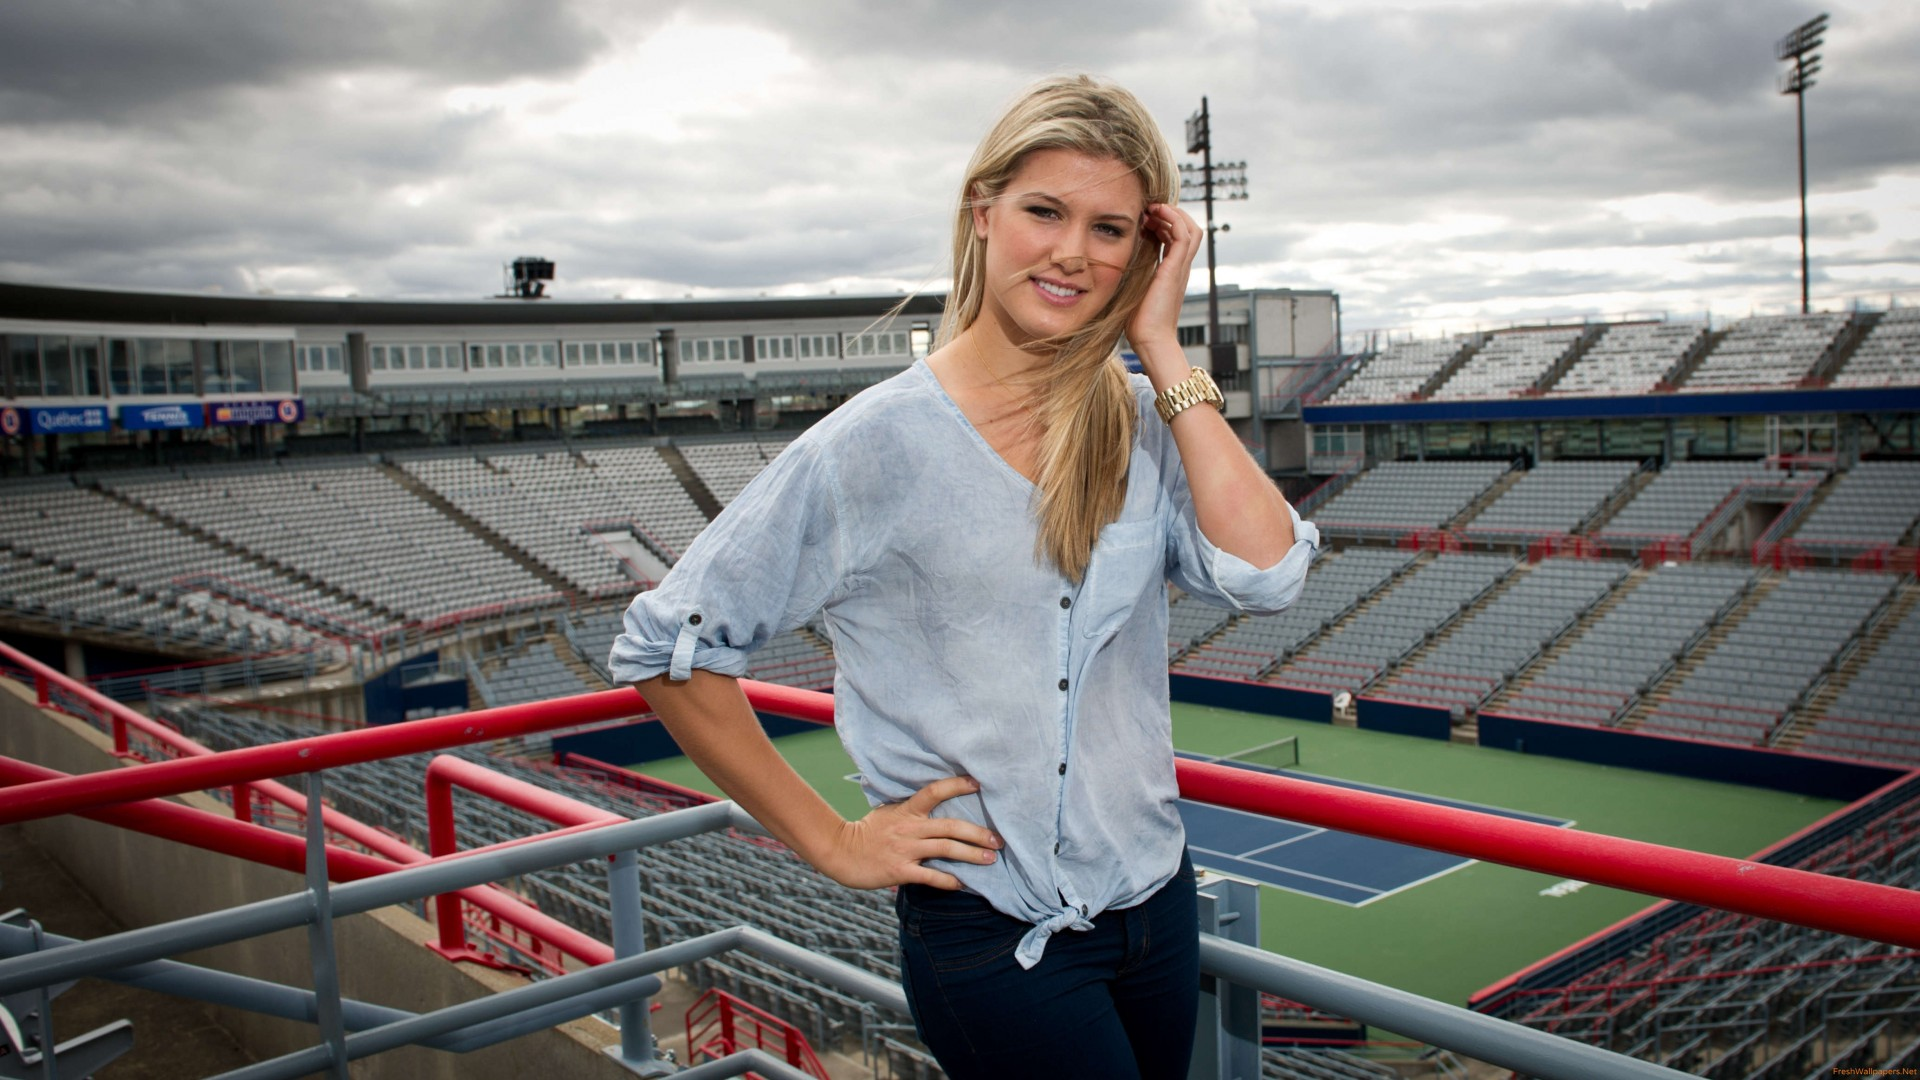 Eugenie Bouchard on Stadium